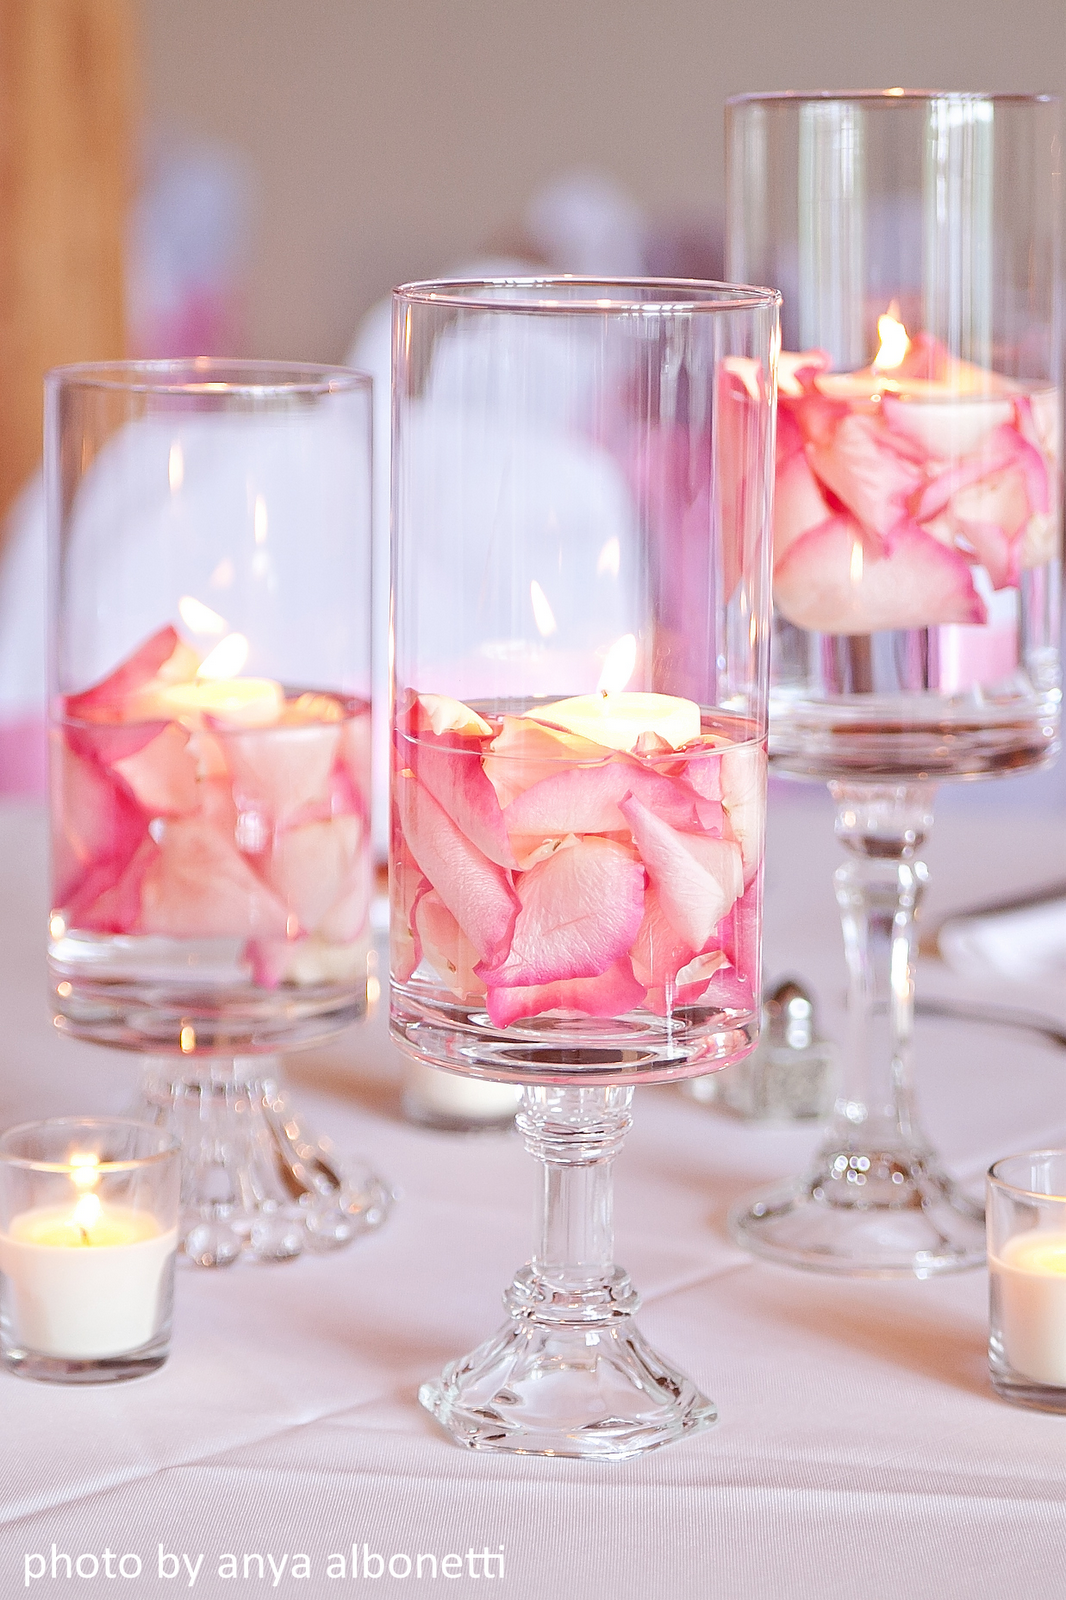 A popular item for brides to make themselves for their wedding reception are the centerpieces. Personal touches can easily be added to make them unique and memorable.